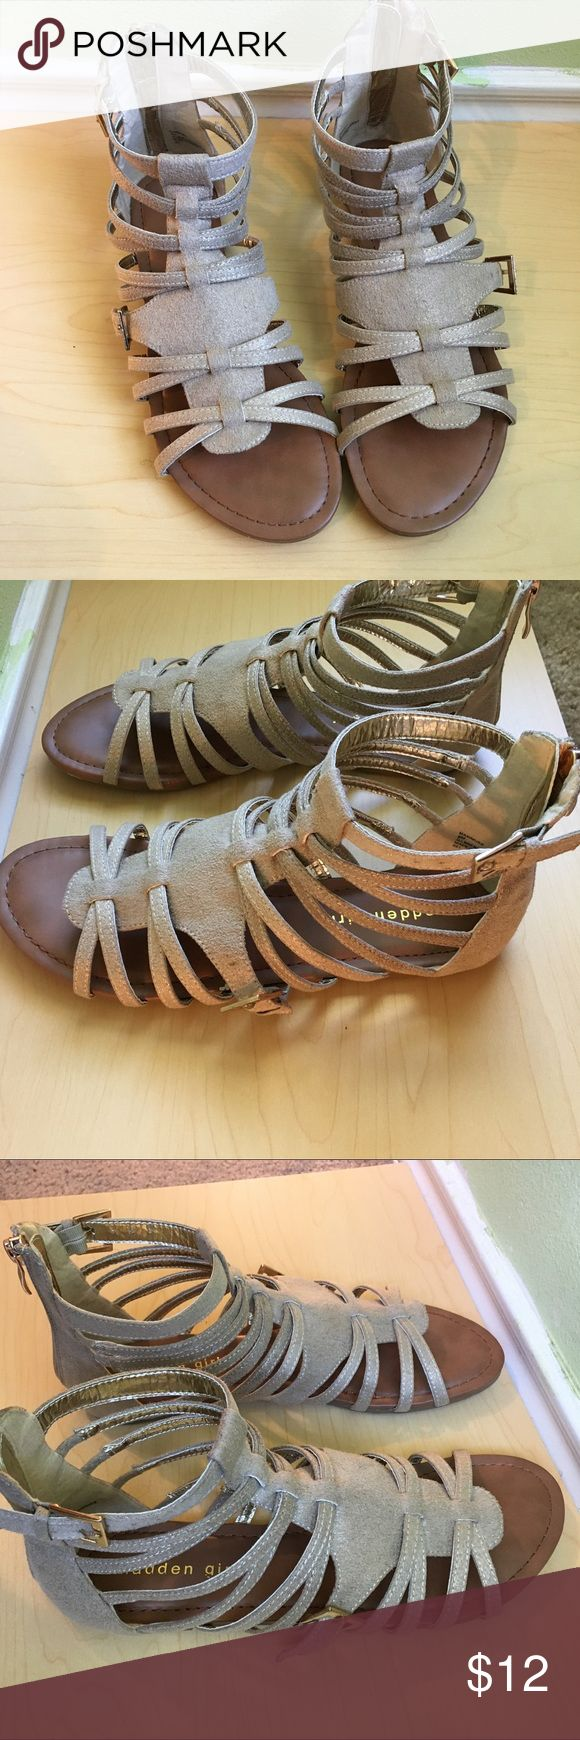 Madden Girl Sandels Never been worn. Glitter gold design zip up in the back. Buckle to widen if needed in side. Needs a new home Madden Girl Shoes Sandals